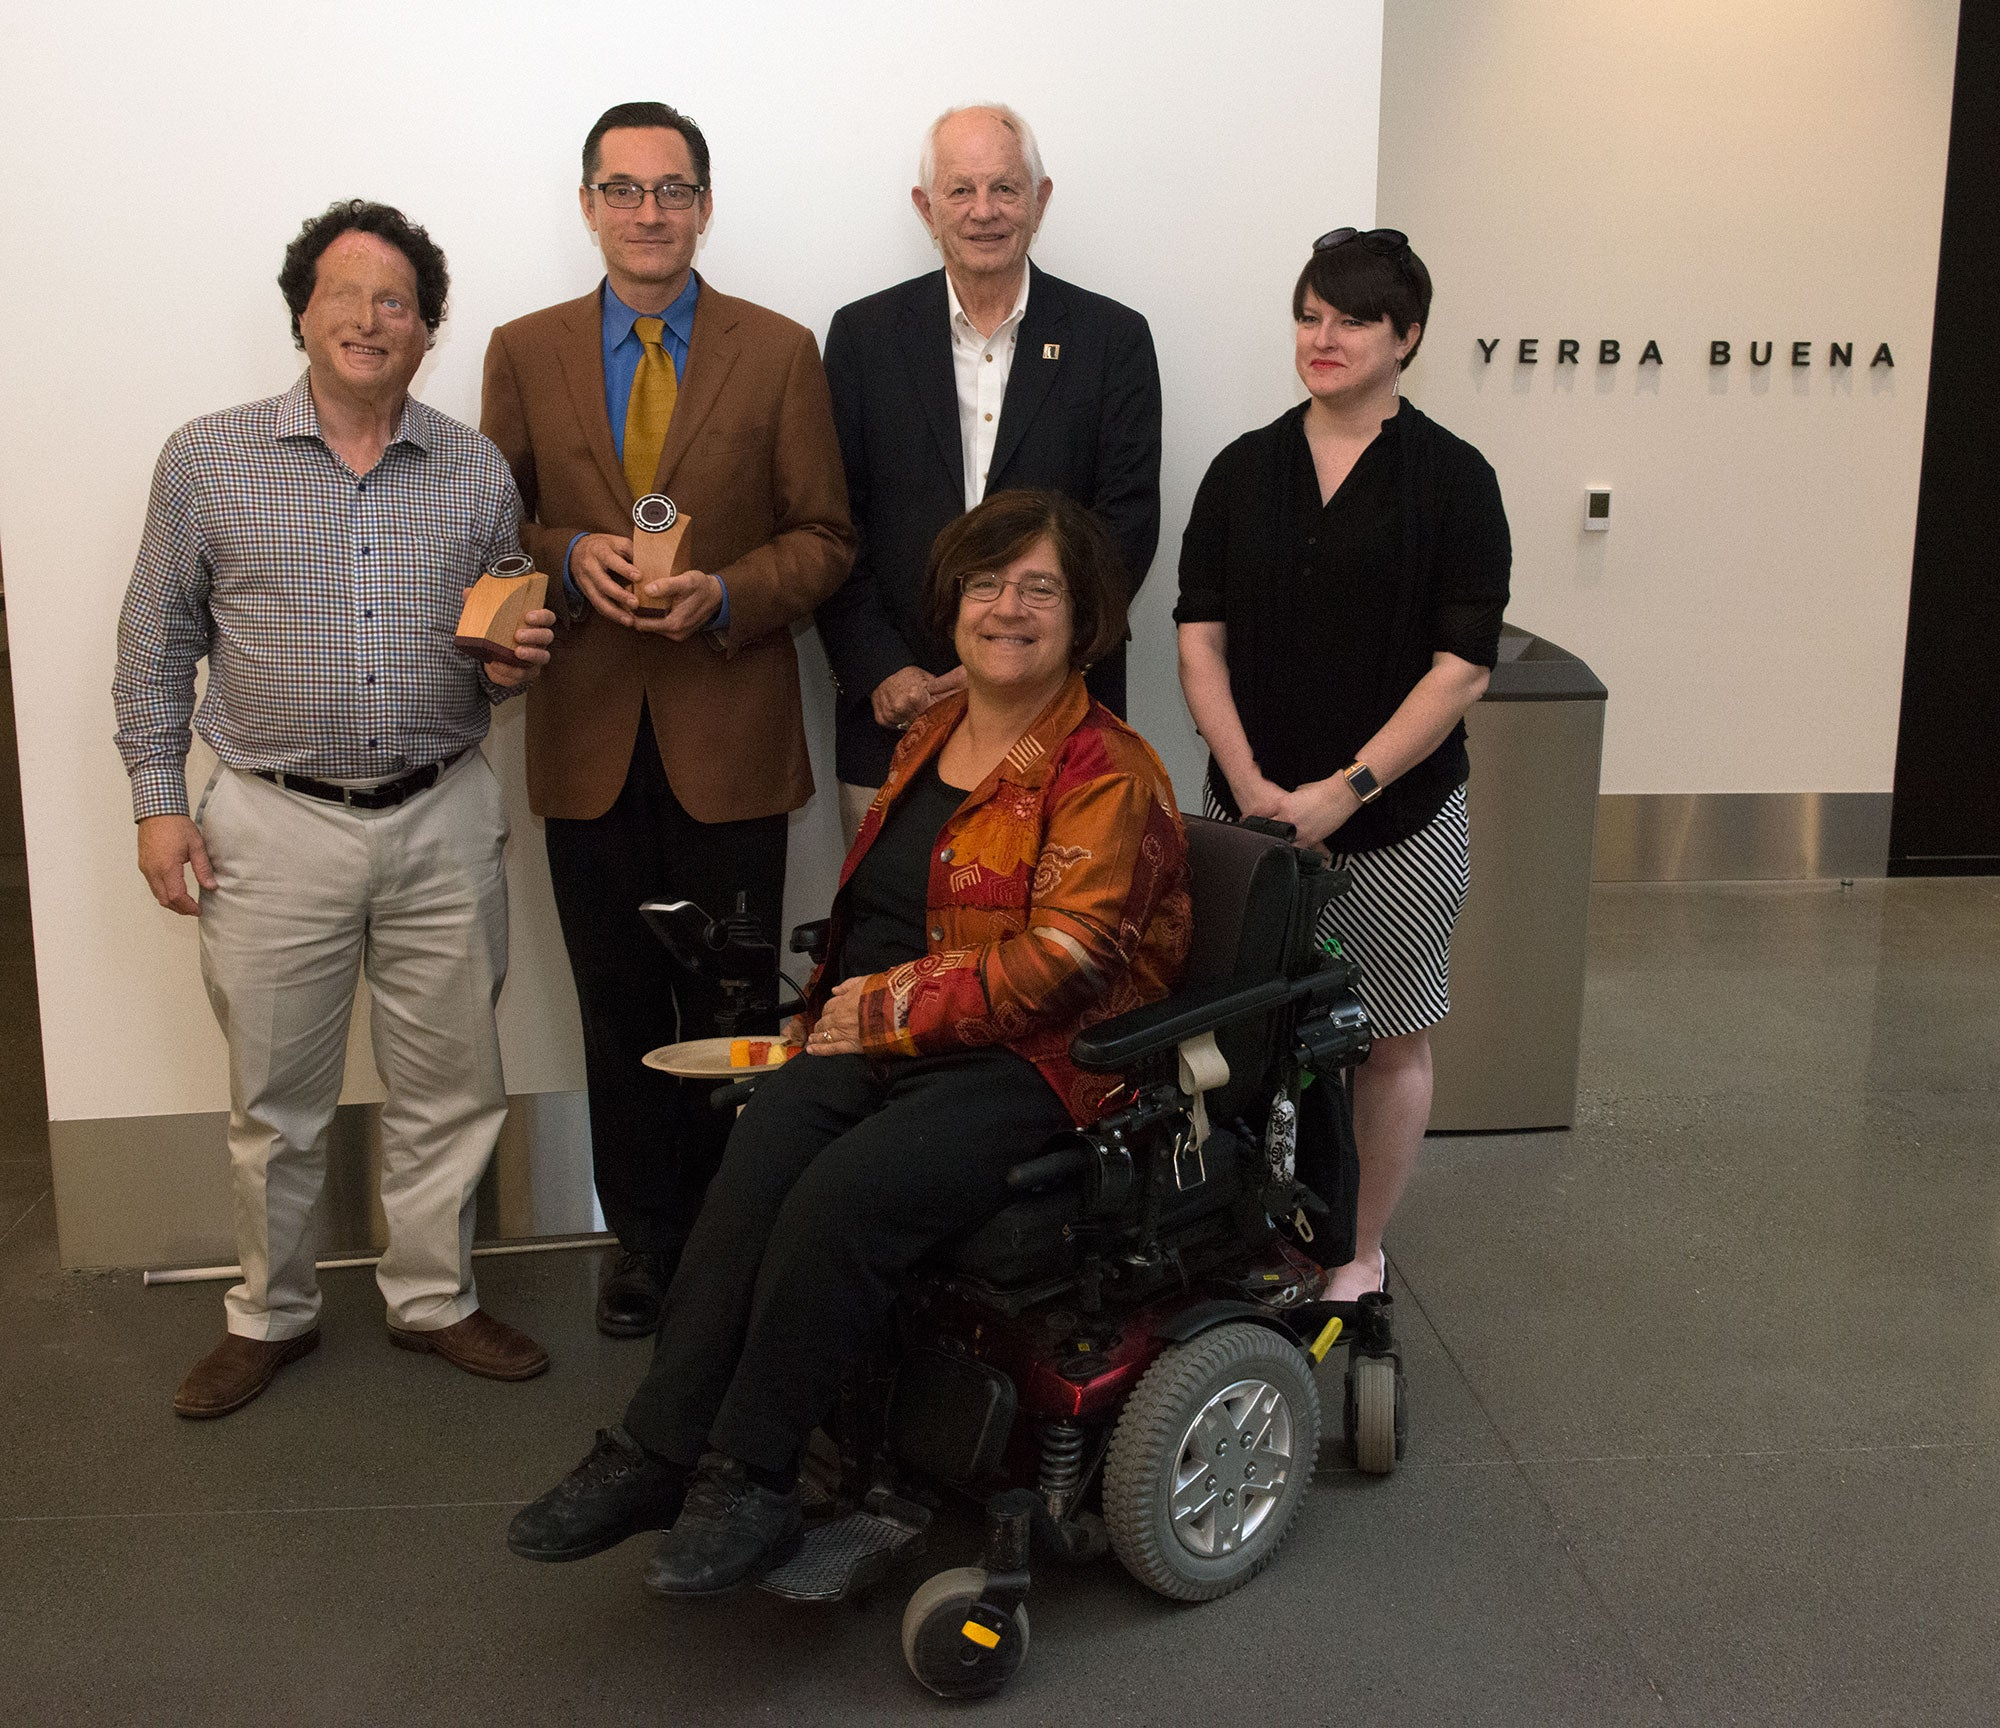 2016 Doris W. Kahn Accessible Transportation Award winners Dr. Joshua Miele and Greg Kehret pose for a photo with MTC Commissioners Tom Bates and Dorene Giacopini